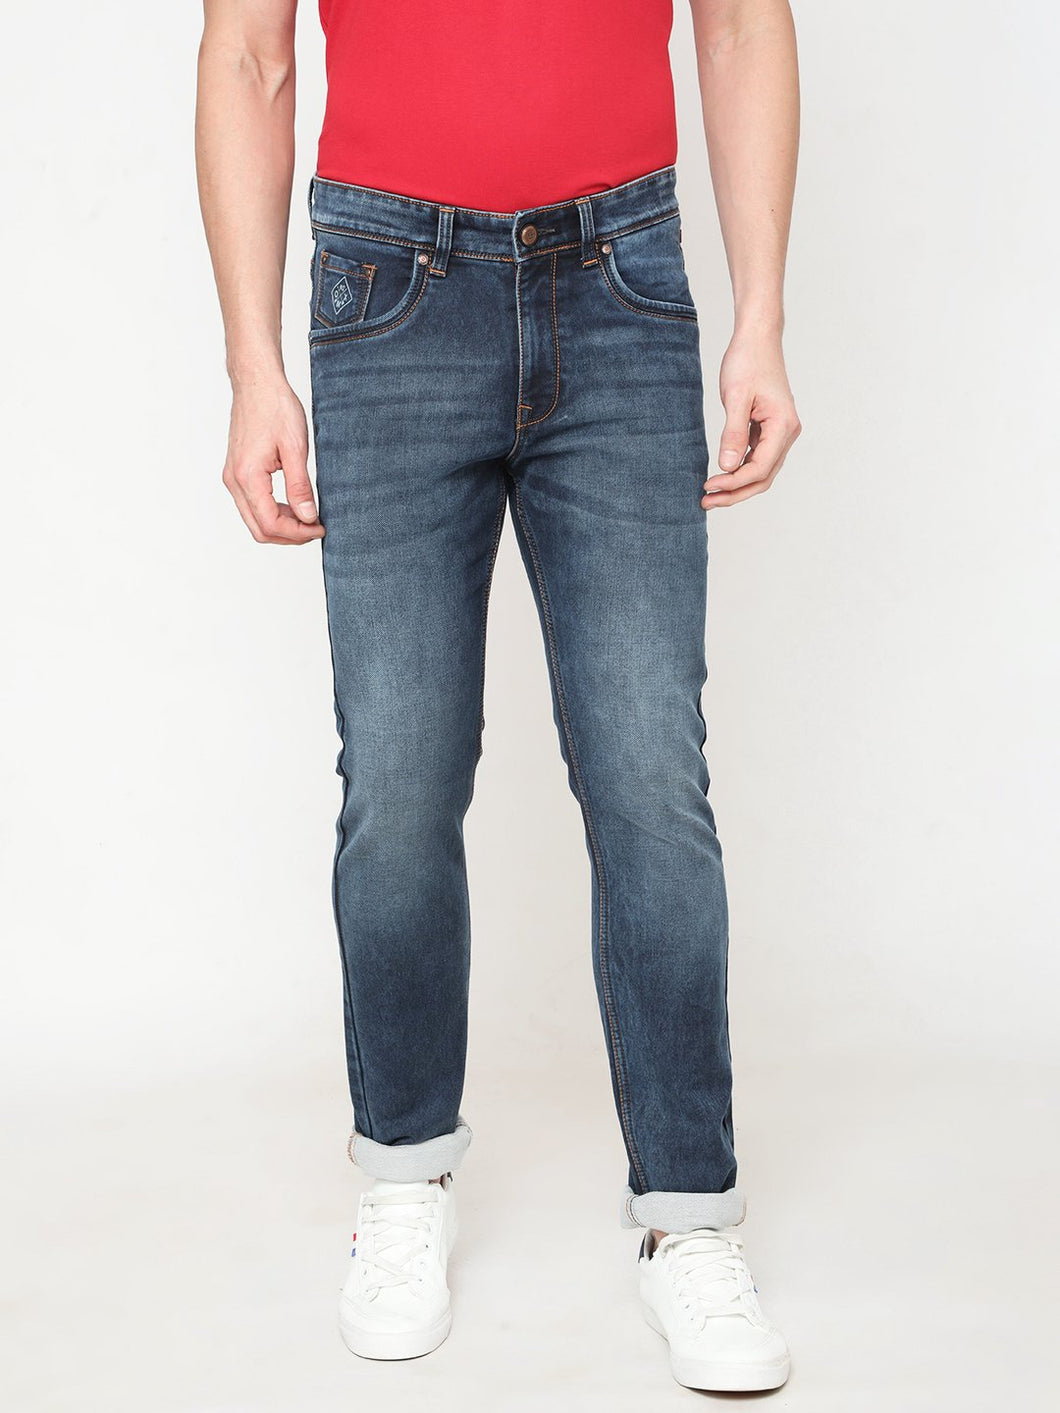 Men's Cotton Stretchable Slim-fit Jeans-DH9225Horizon blue